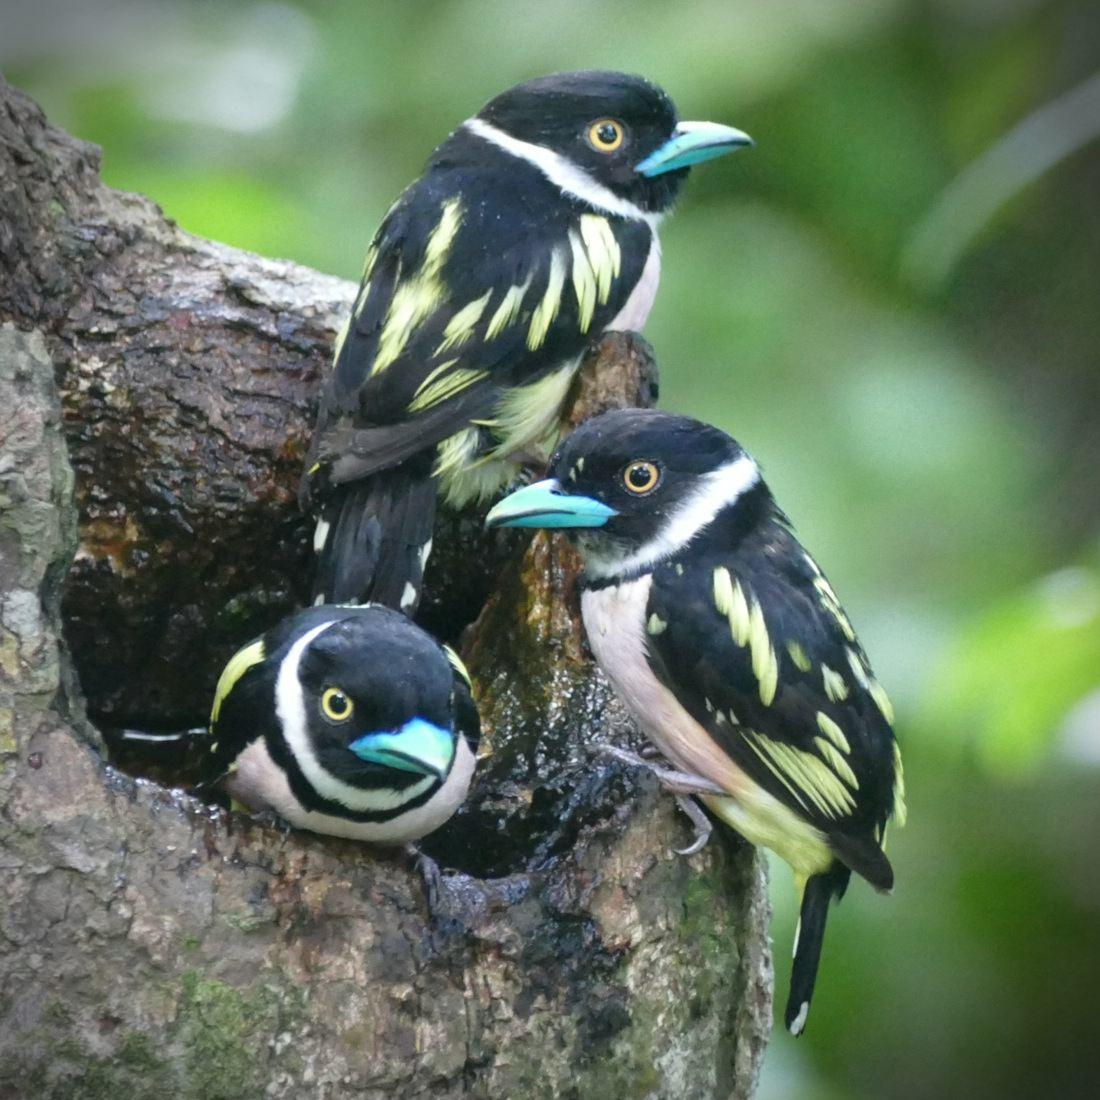 A trio of Black-and-yellow Broadbills poses on a tree trunk. Noah Strycker